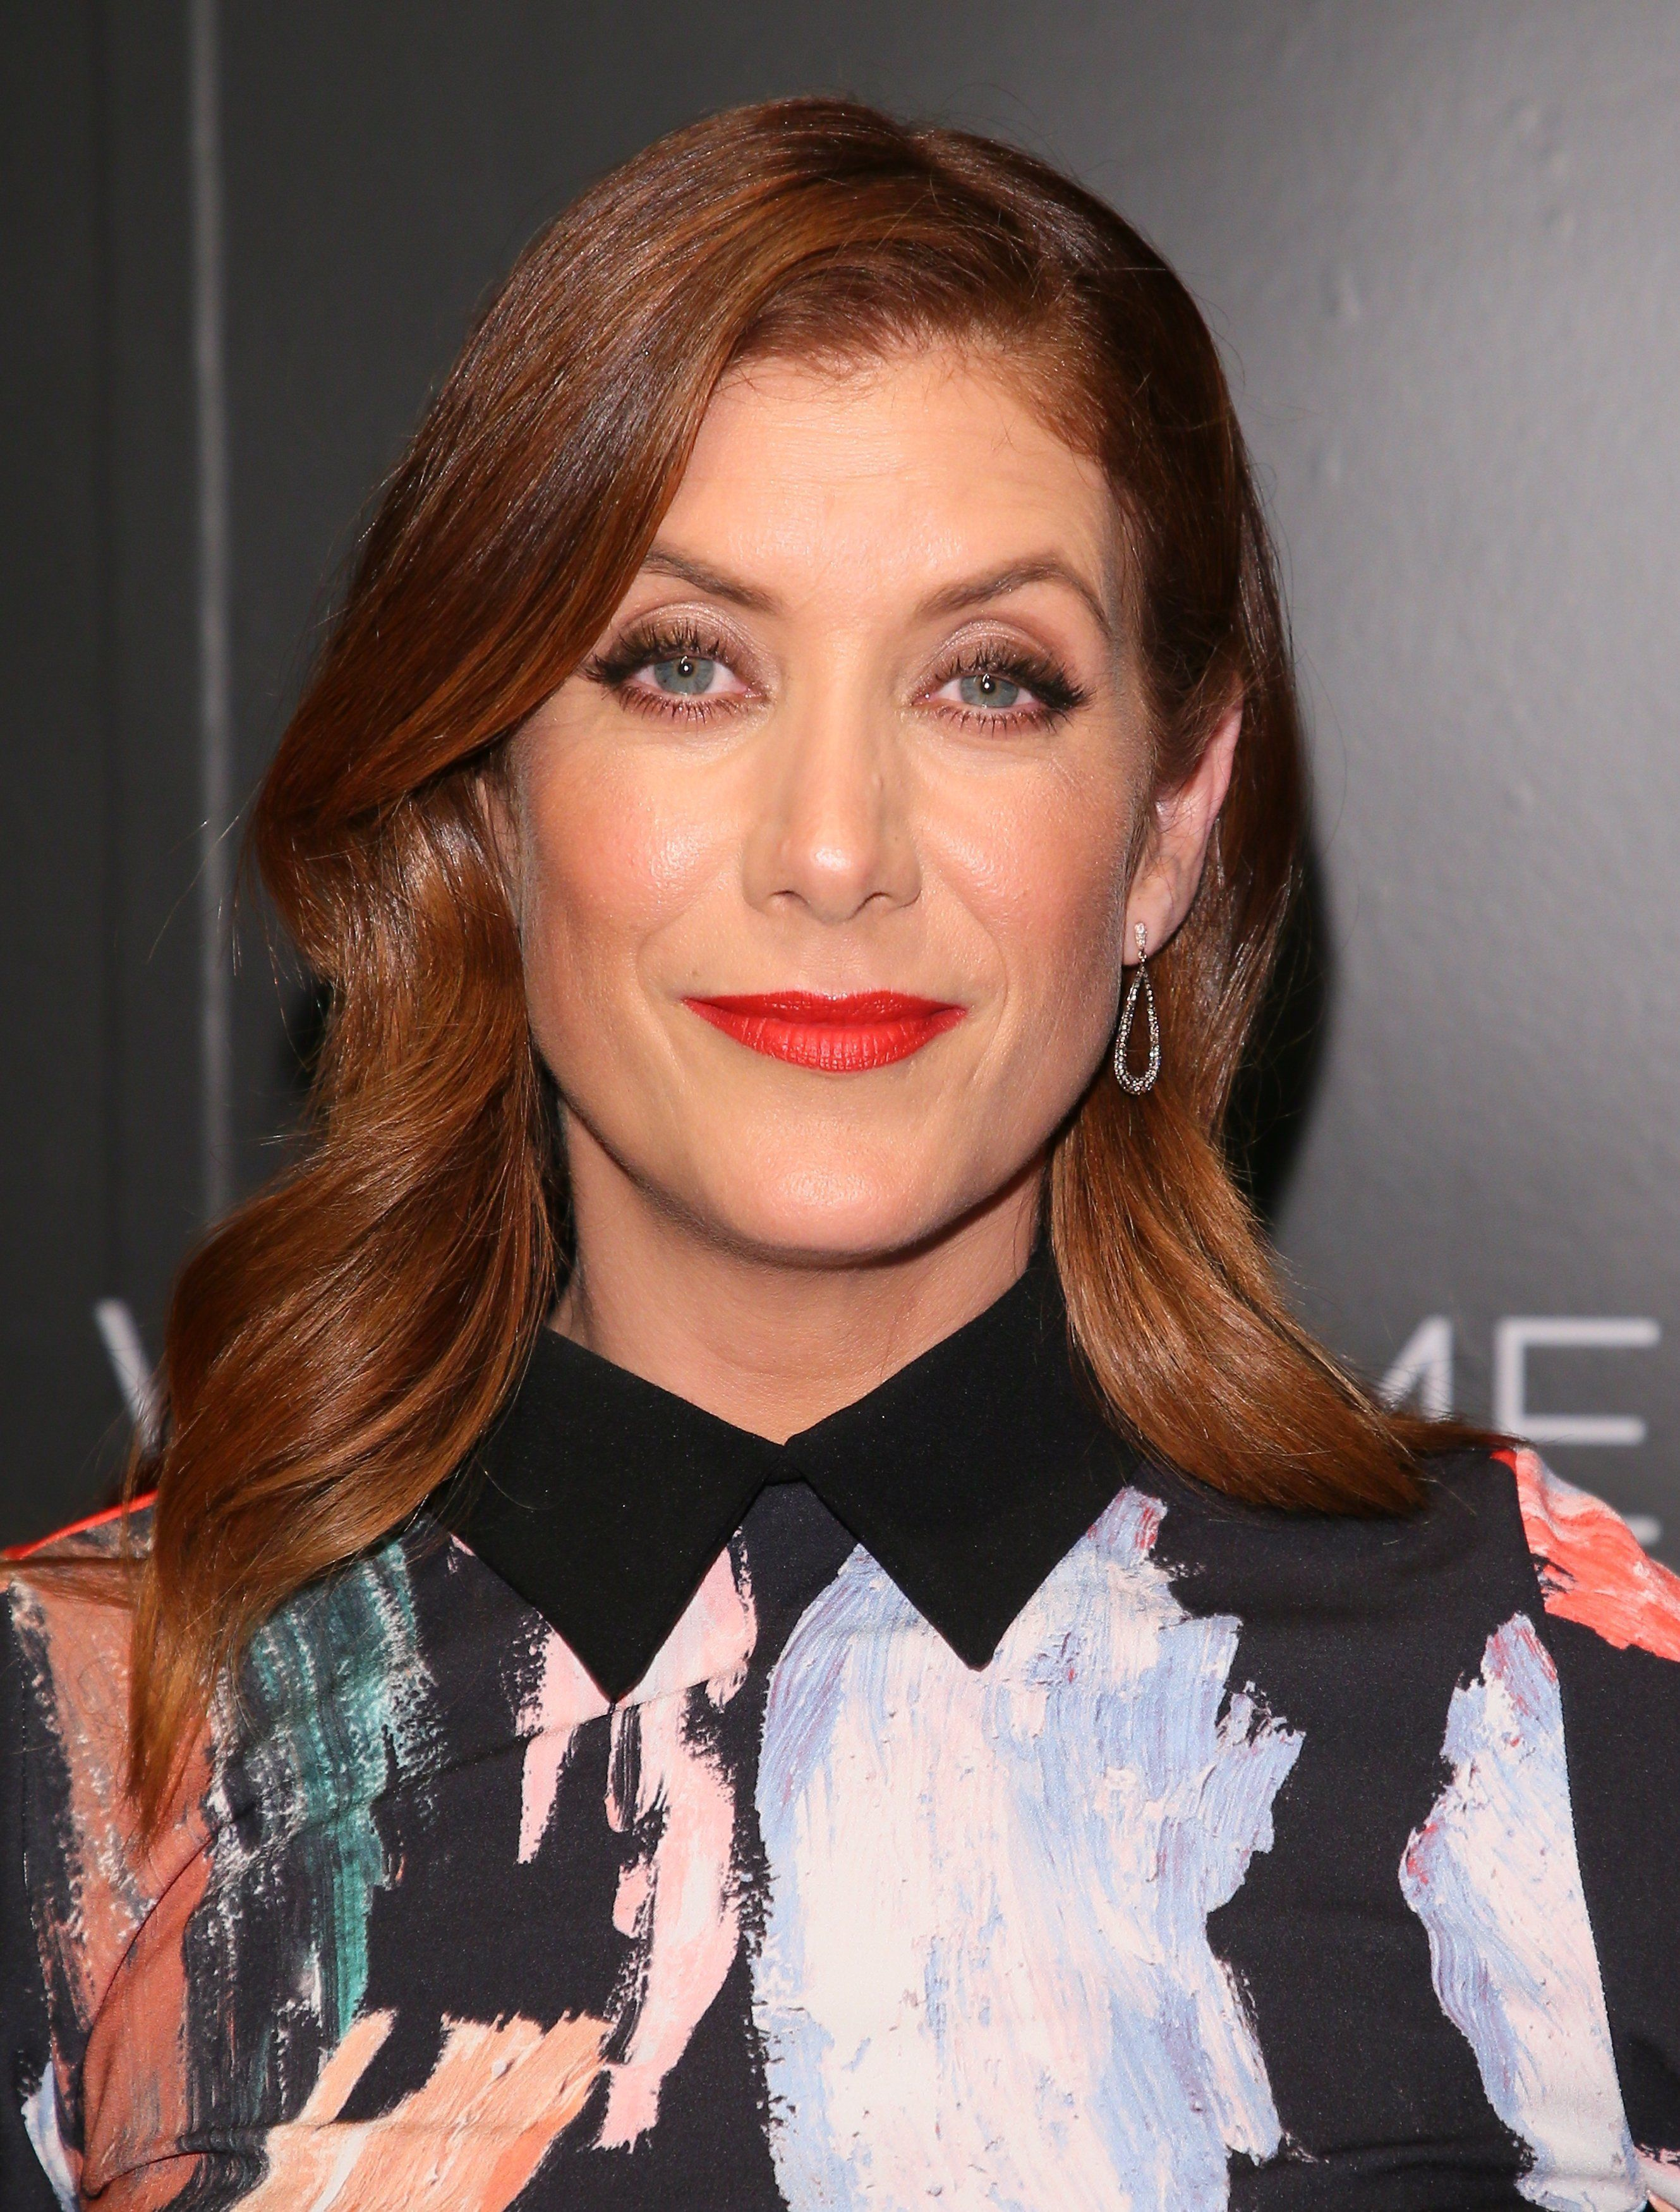 BEVERLY HILLS, CA - JUNE 02: Kate Walsh attends Netflix's '13 Reasons Why' FYC event at Netflix FYSee Space on June 02, 2017 in Beverly Hills, California. (Photo by JB Lacroix/WireImage)